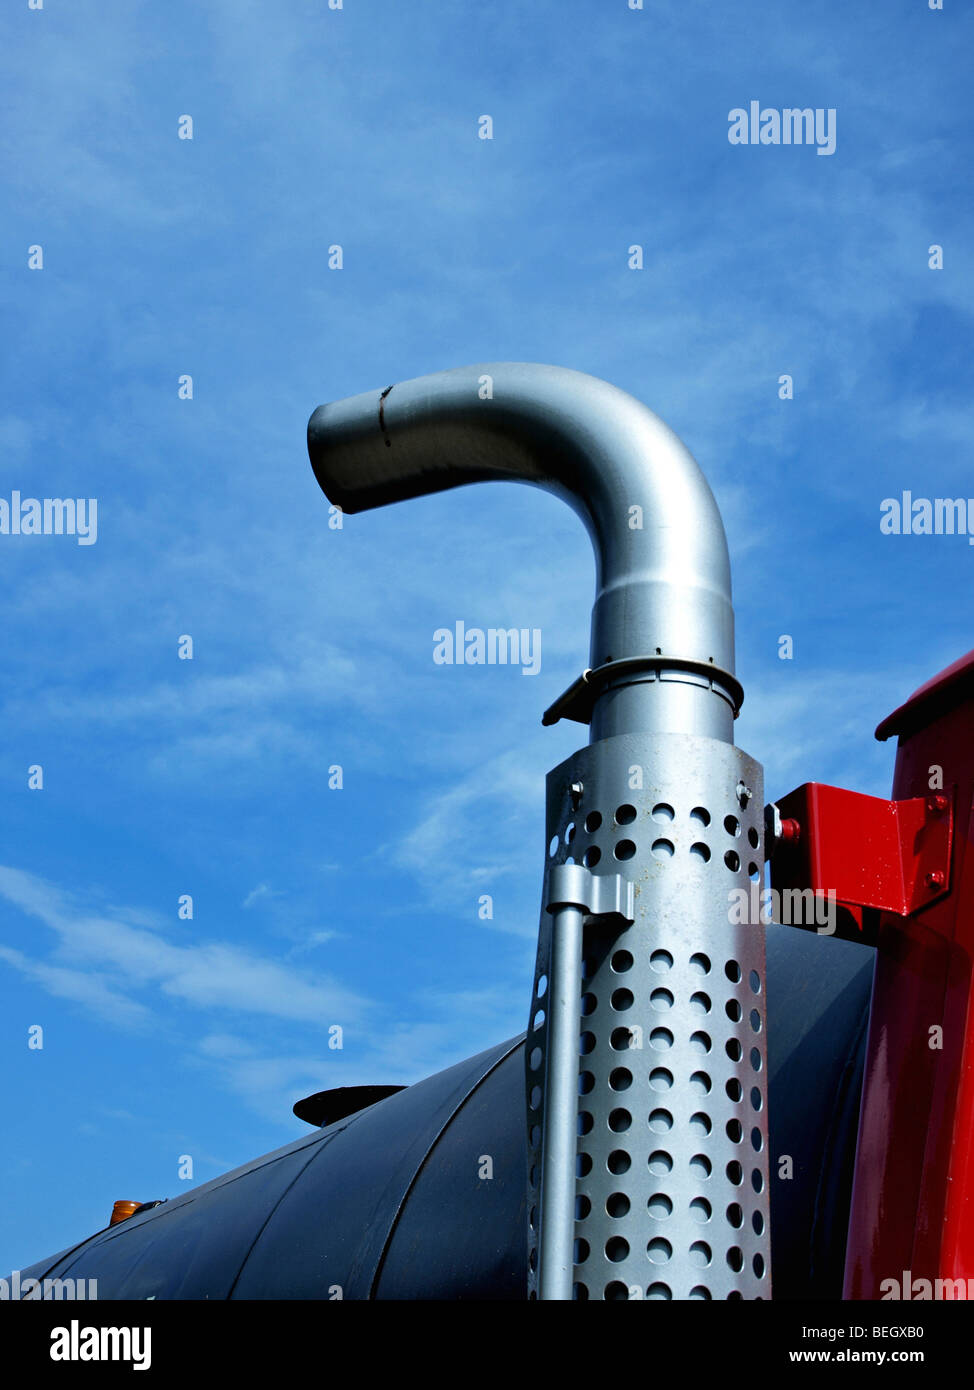 https www alamy com stock photo exhaust pipe on side of large truck sticking up in the air to a blue 26187476 html